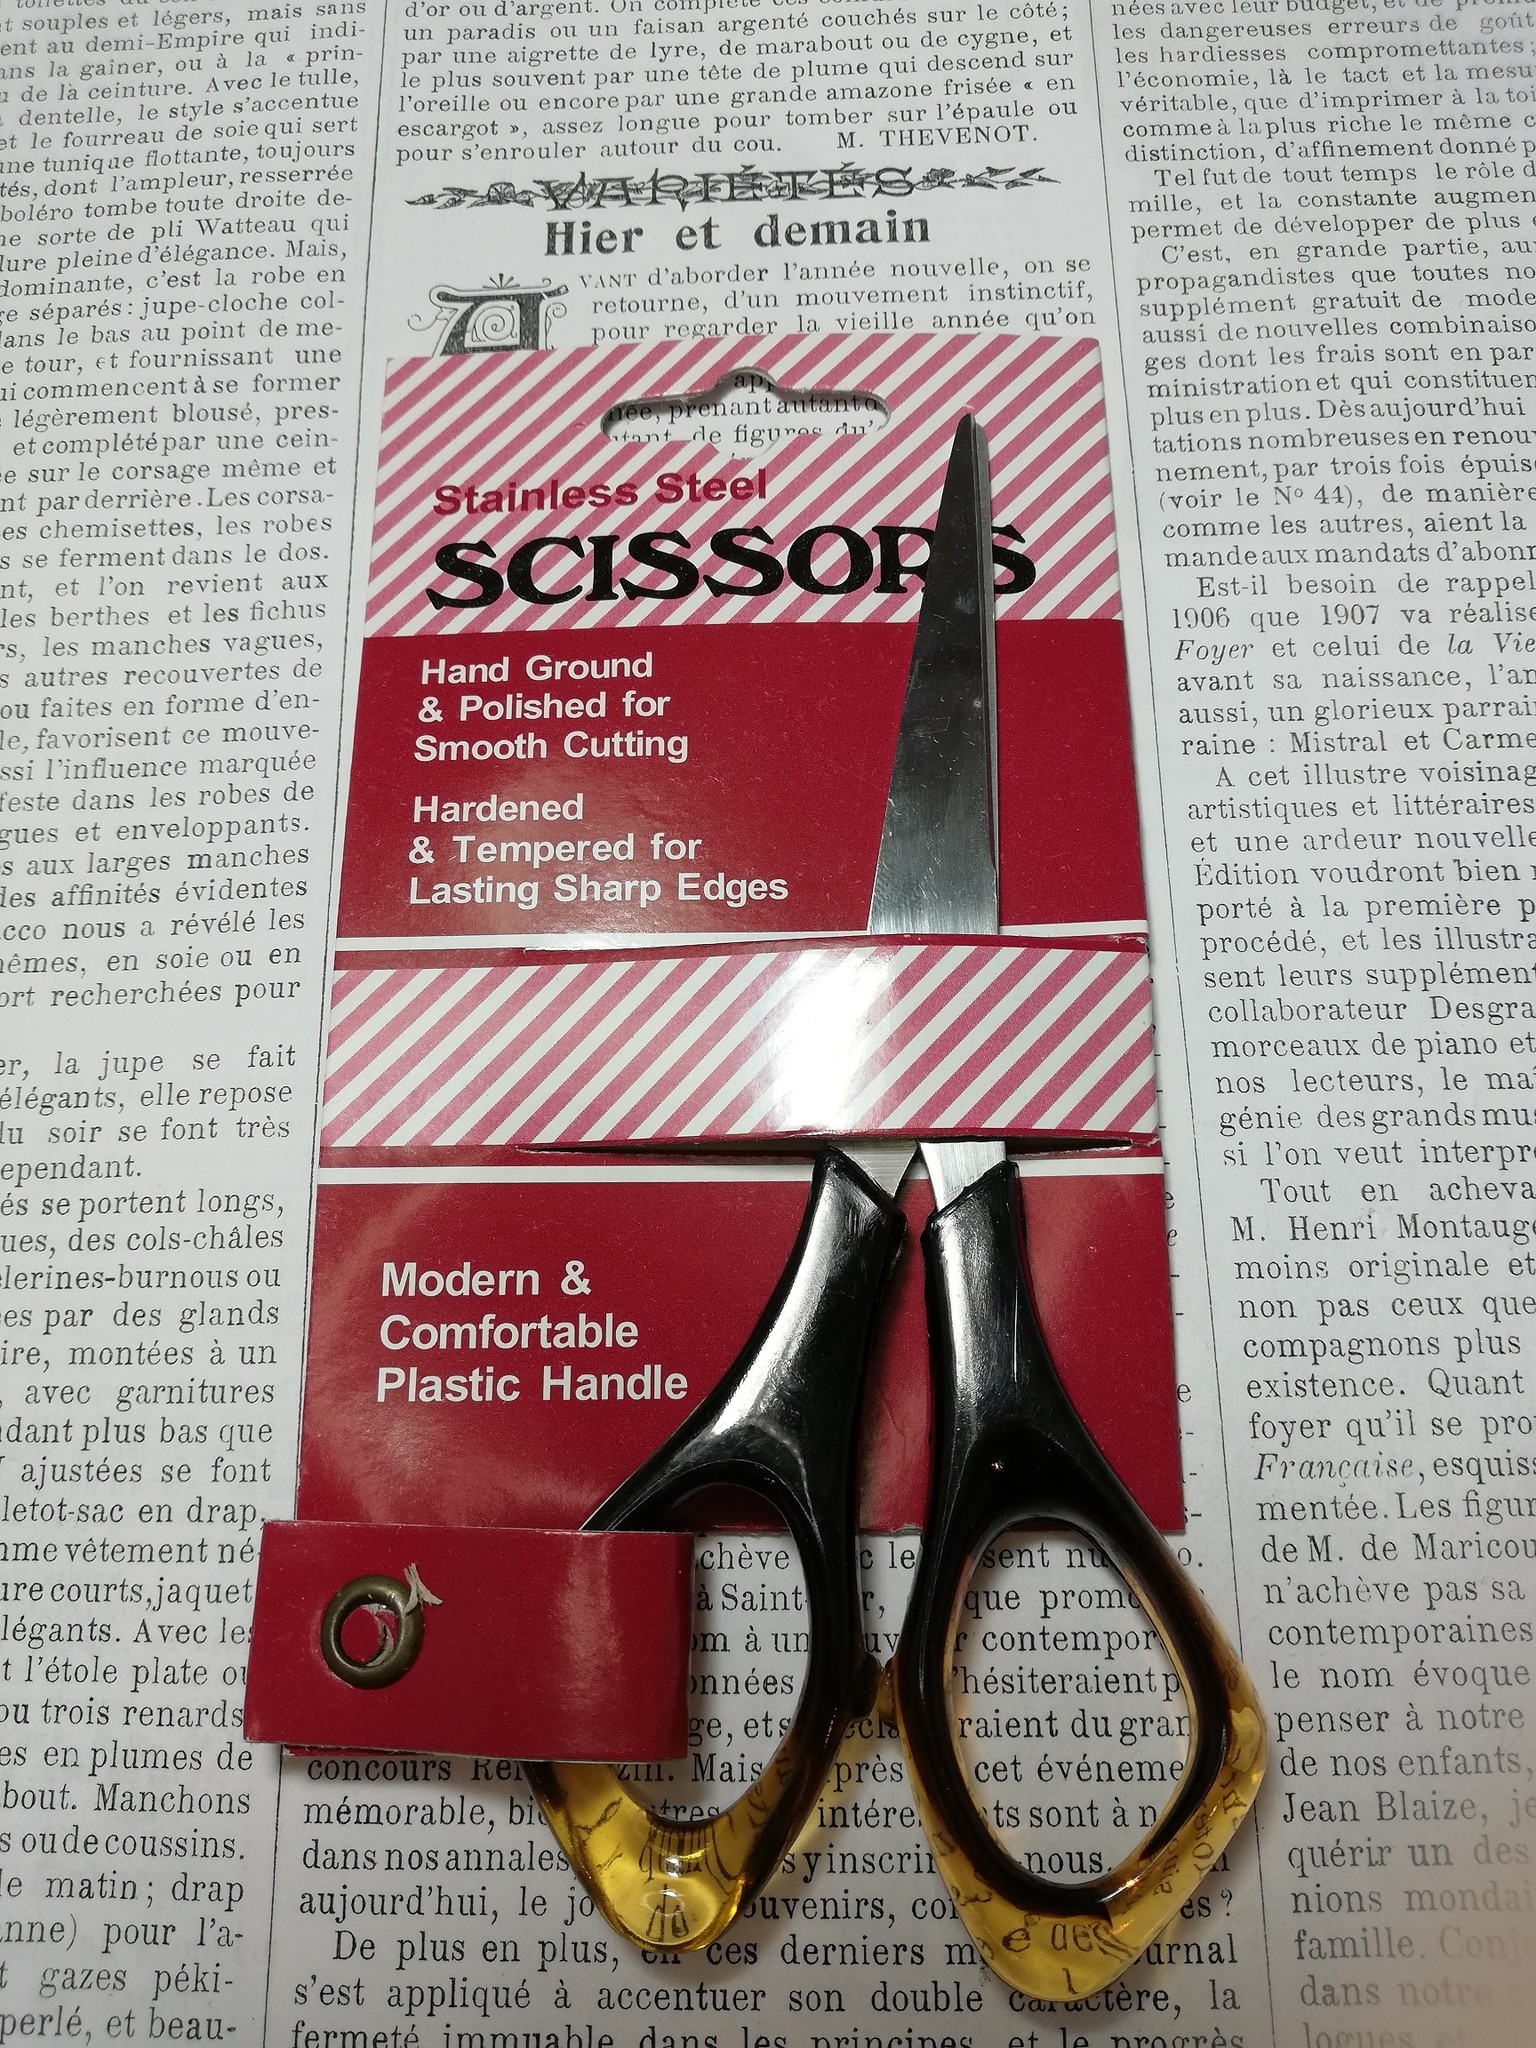 Savoy small handsewing scissors.